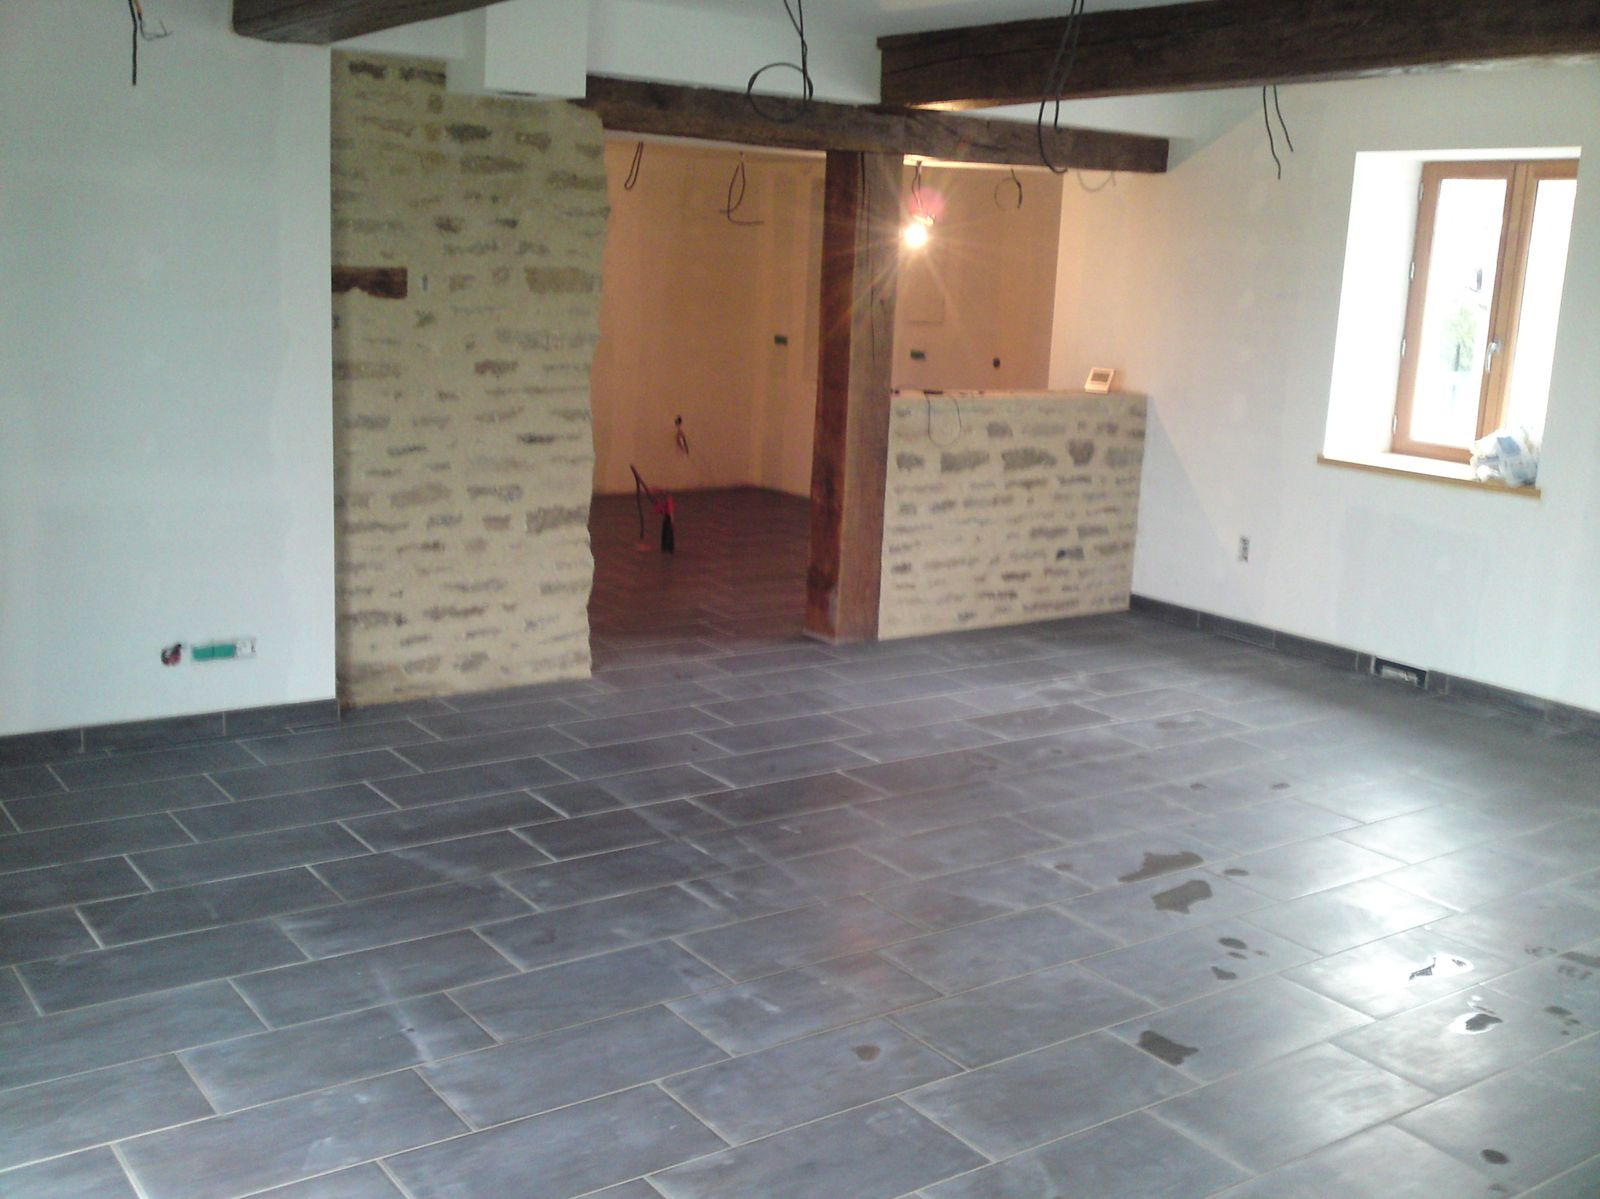 Joints de carrelage renovation d 39 une fermette en bourgogne for Carrelage pour salon